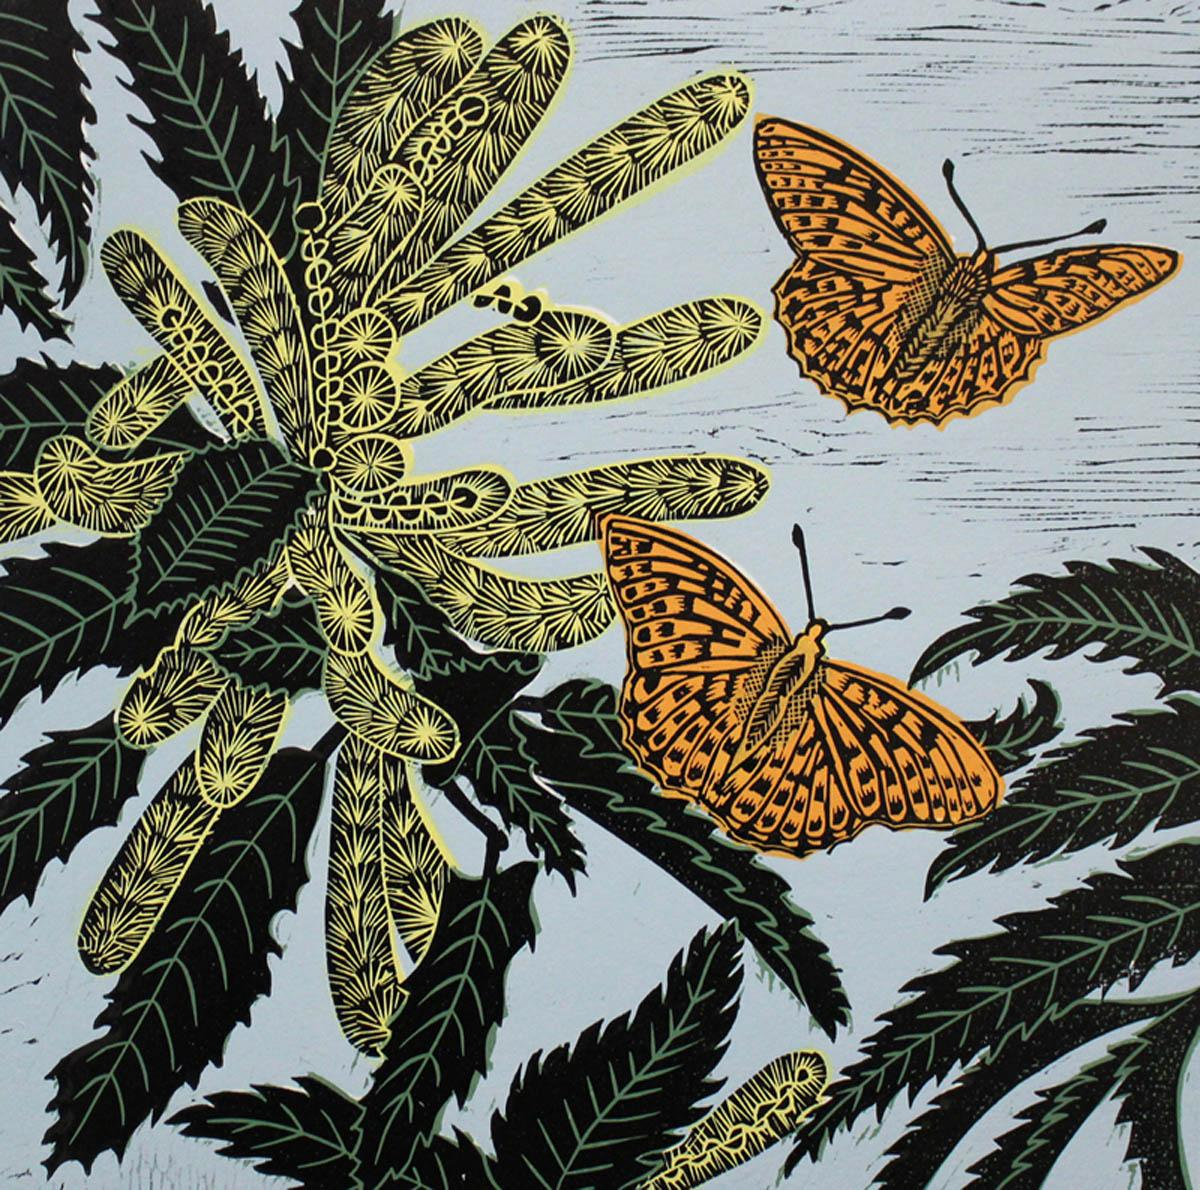 Snettisham Sweet Chestnut, Kate Heiss, Limited edition linocut print, Butterfly